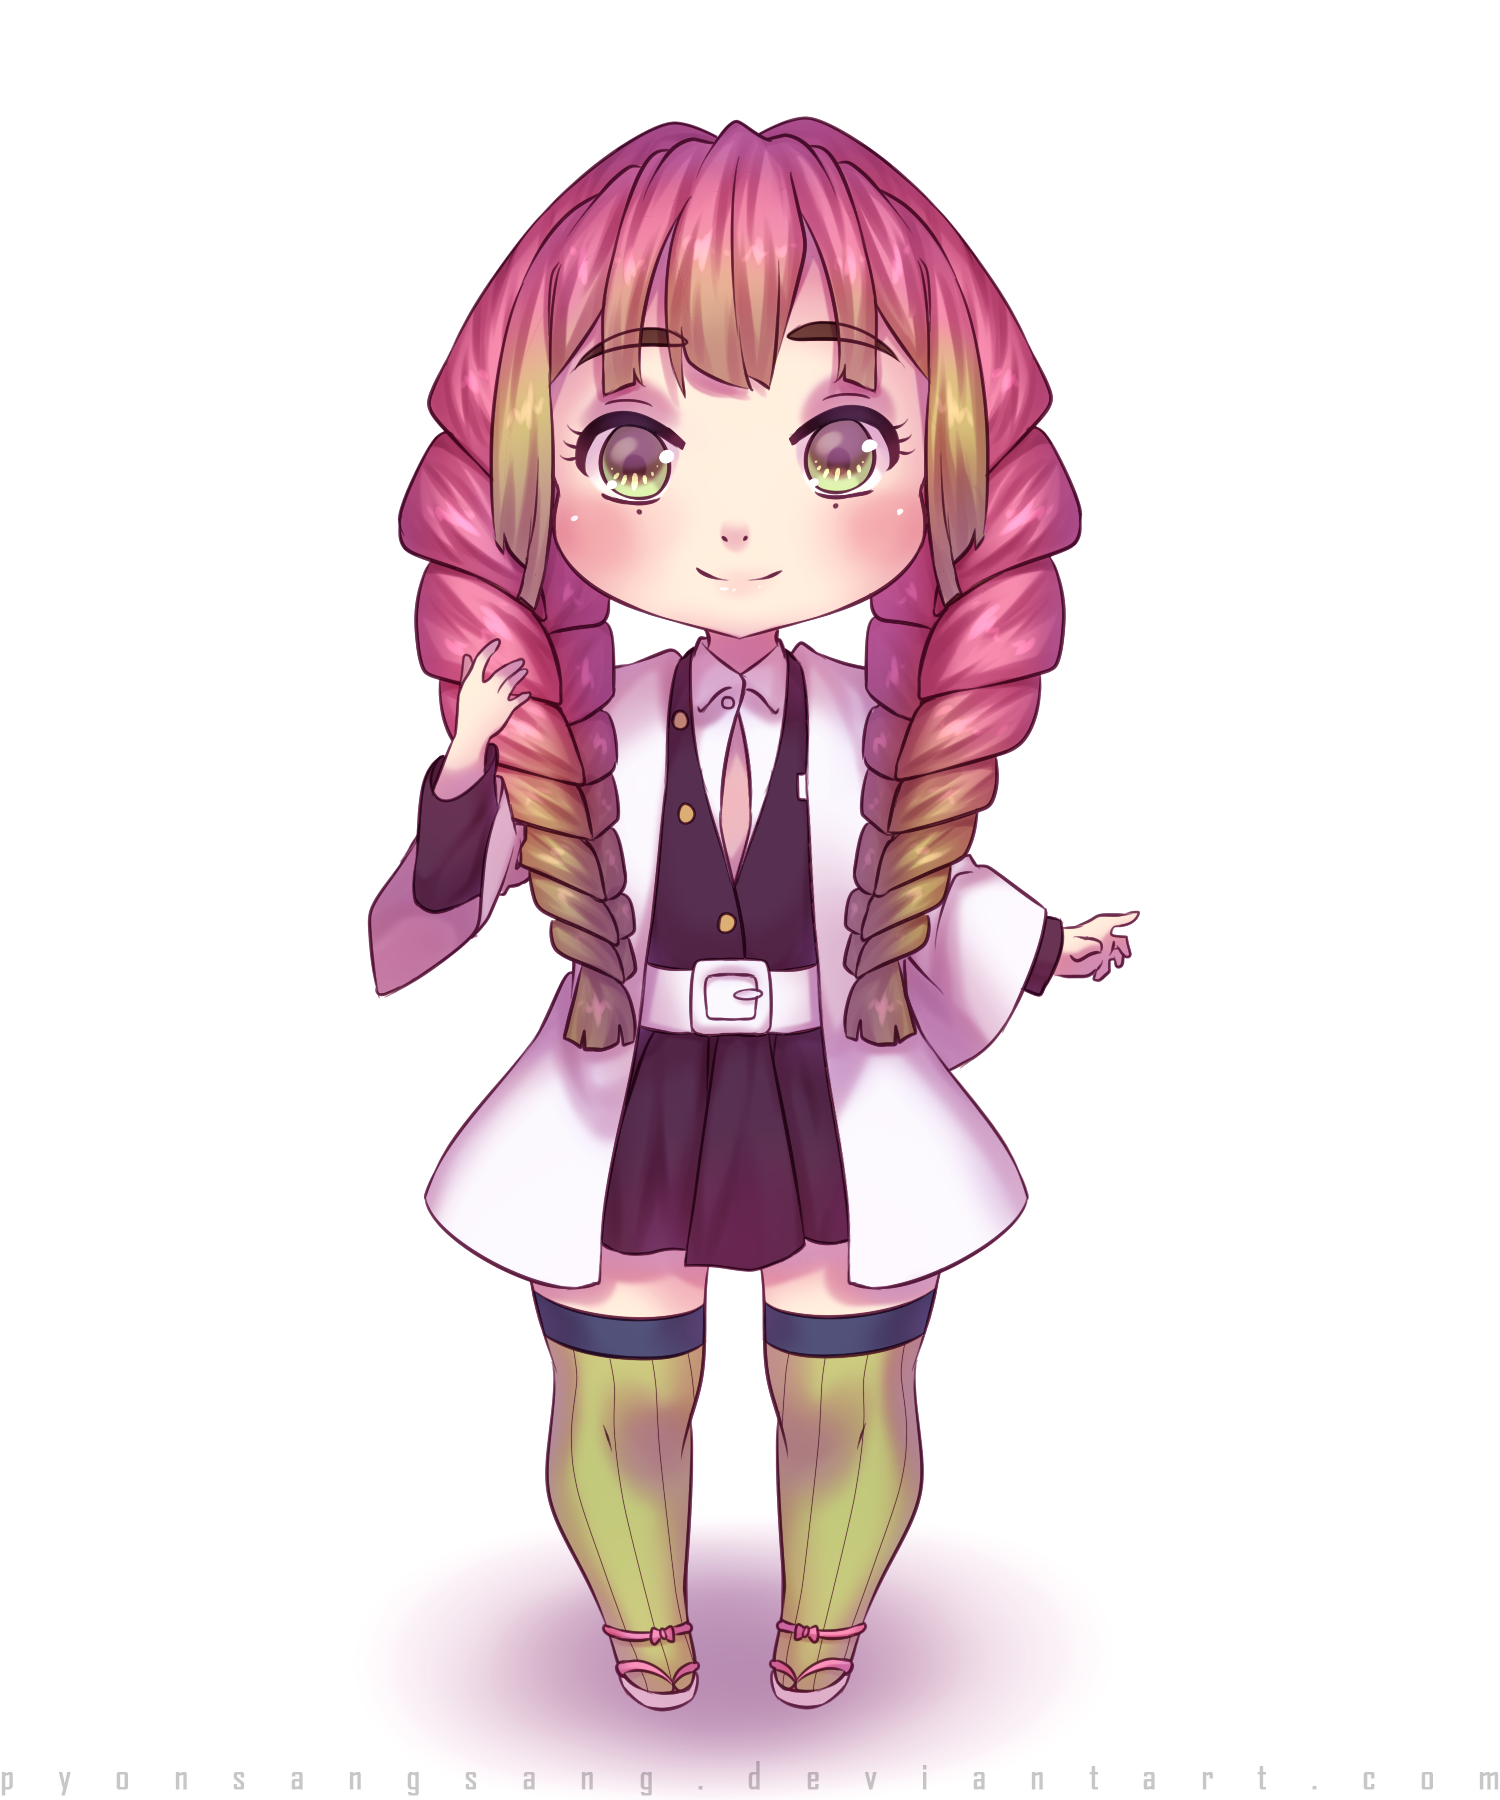 Mitsuri Kanroji Fanart By Pyonsangsang On Deviantart I was expecting to have a nice and cute result but apparently it didn't work. mitsuri kanroji fanart by pyonsangsang